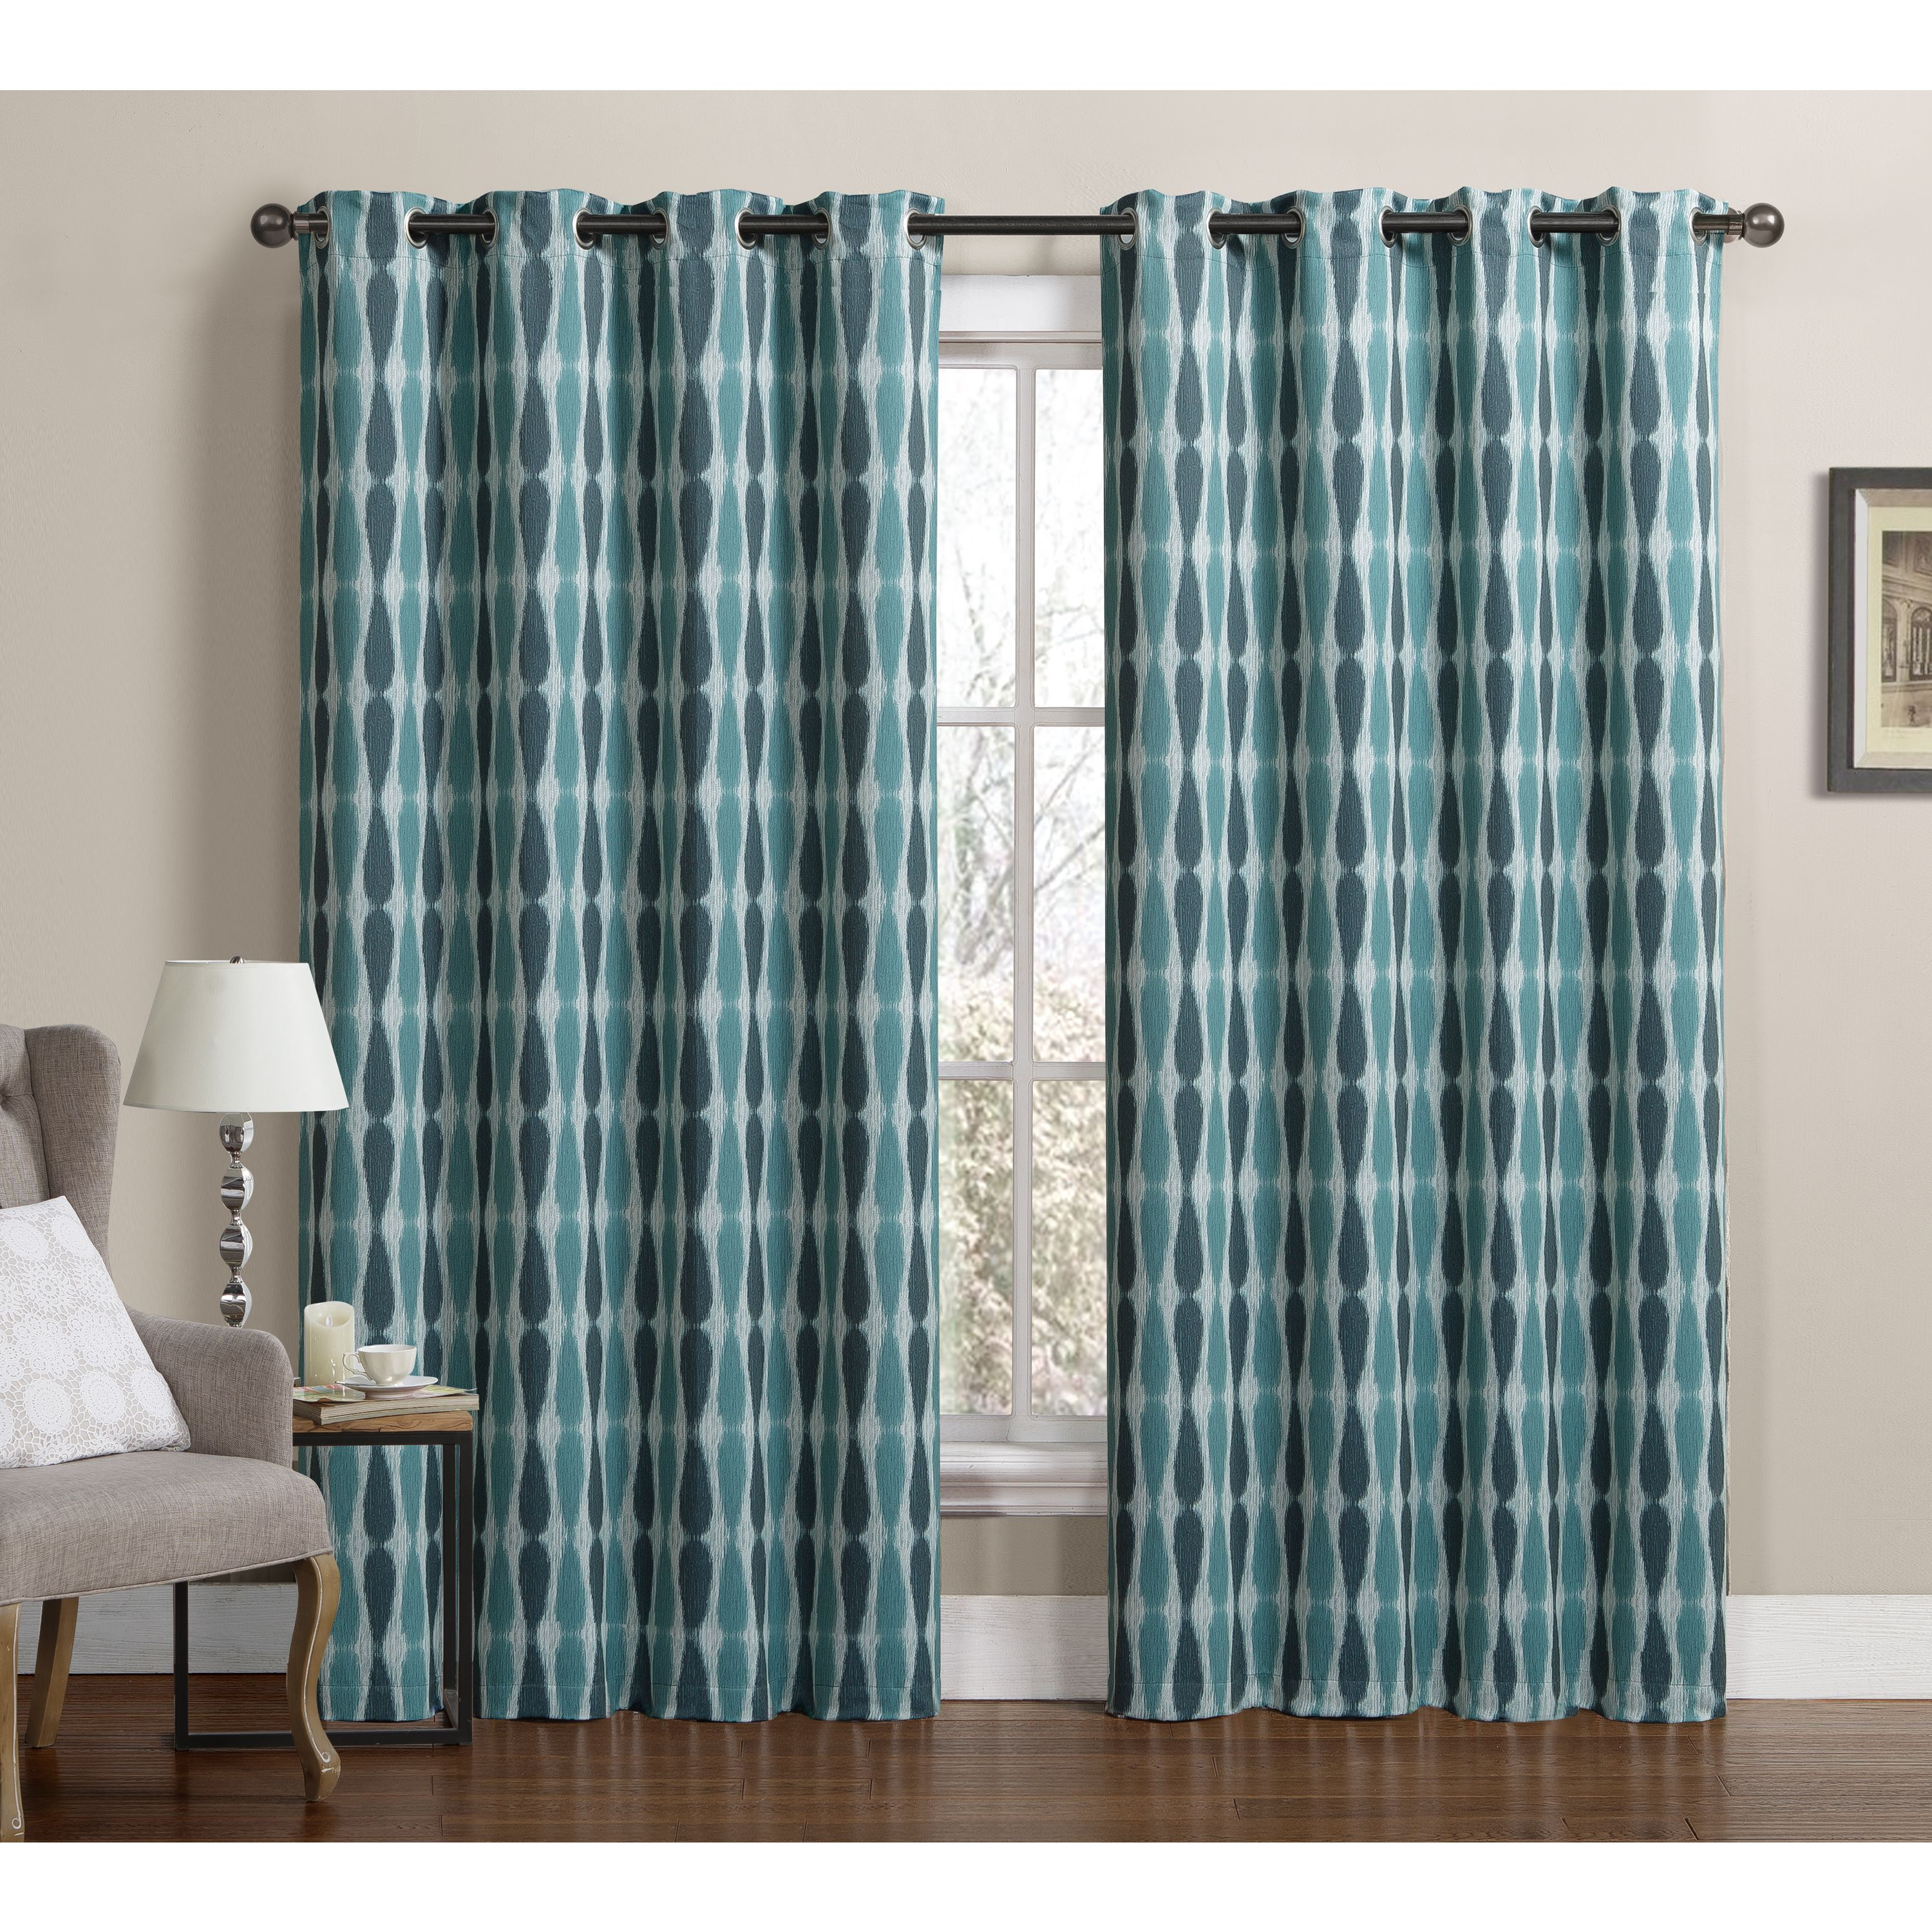 Delightful VCNY Monsoon Grommet Top Blackout Curtain Panel Pair By VCNY